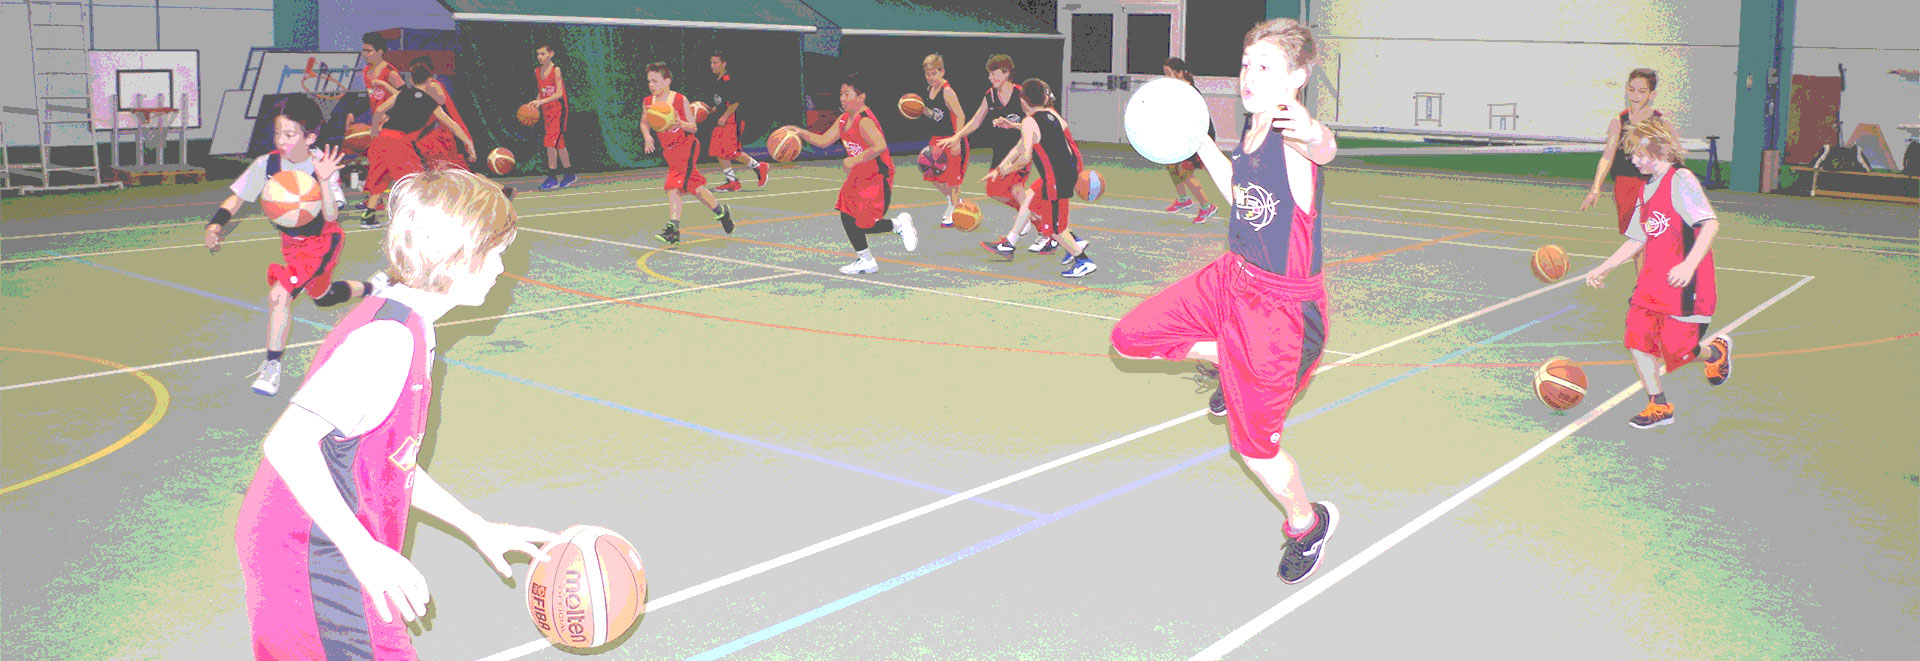 acgba basketball camp - automne 2017